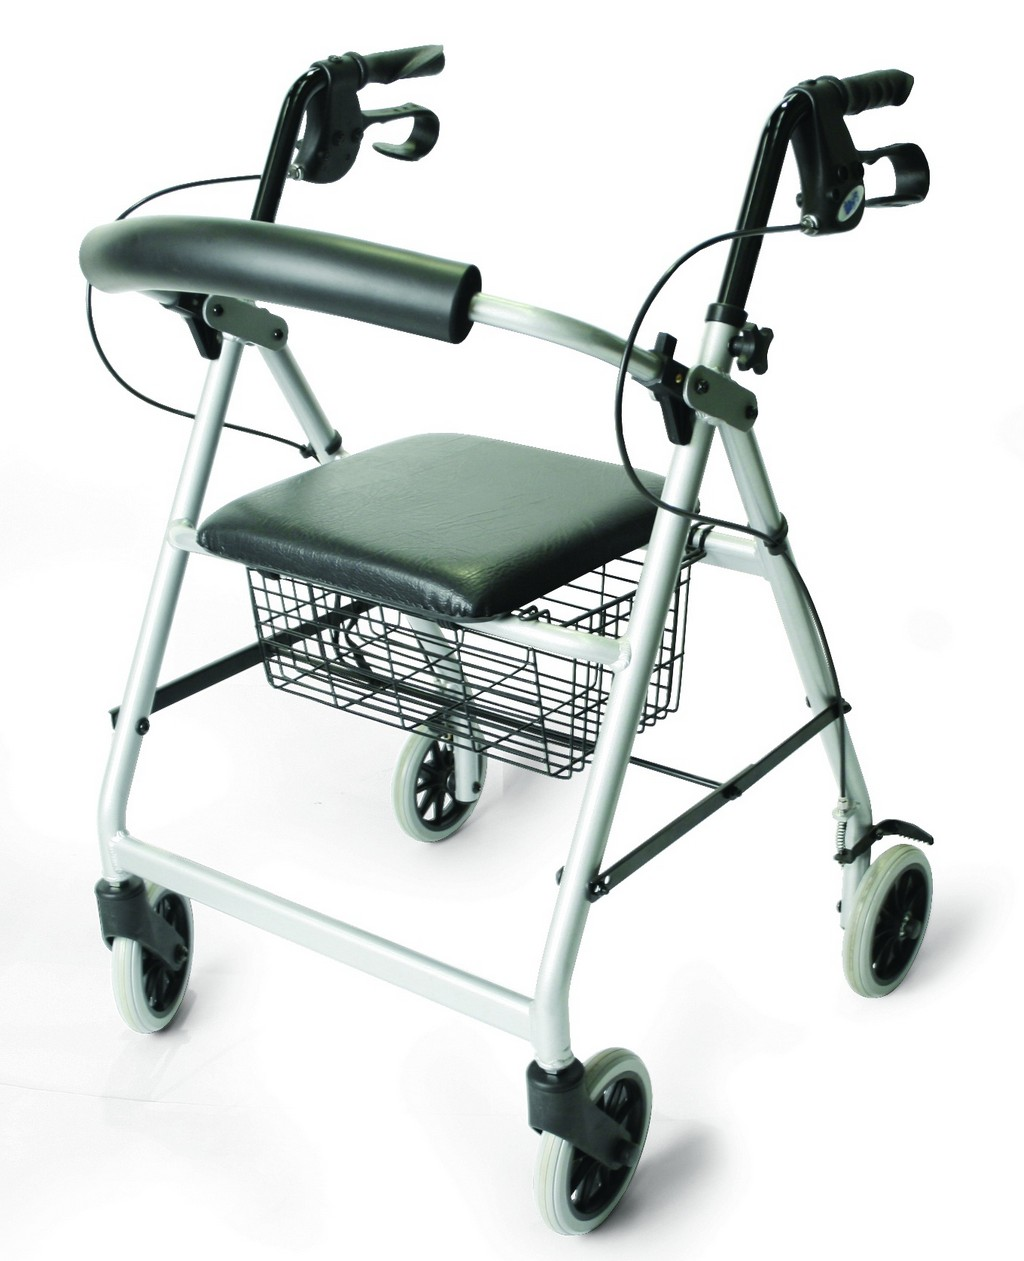 extra wide rollators, rollator transport walker, deluxe aluminum rollator black, small rollators